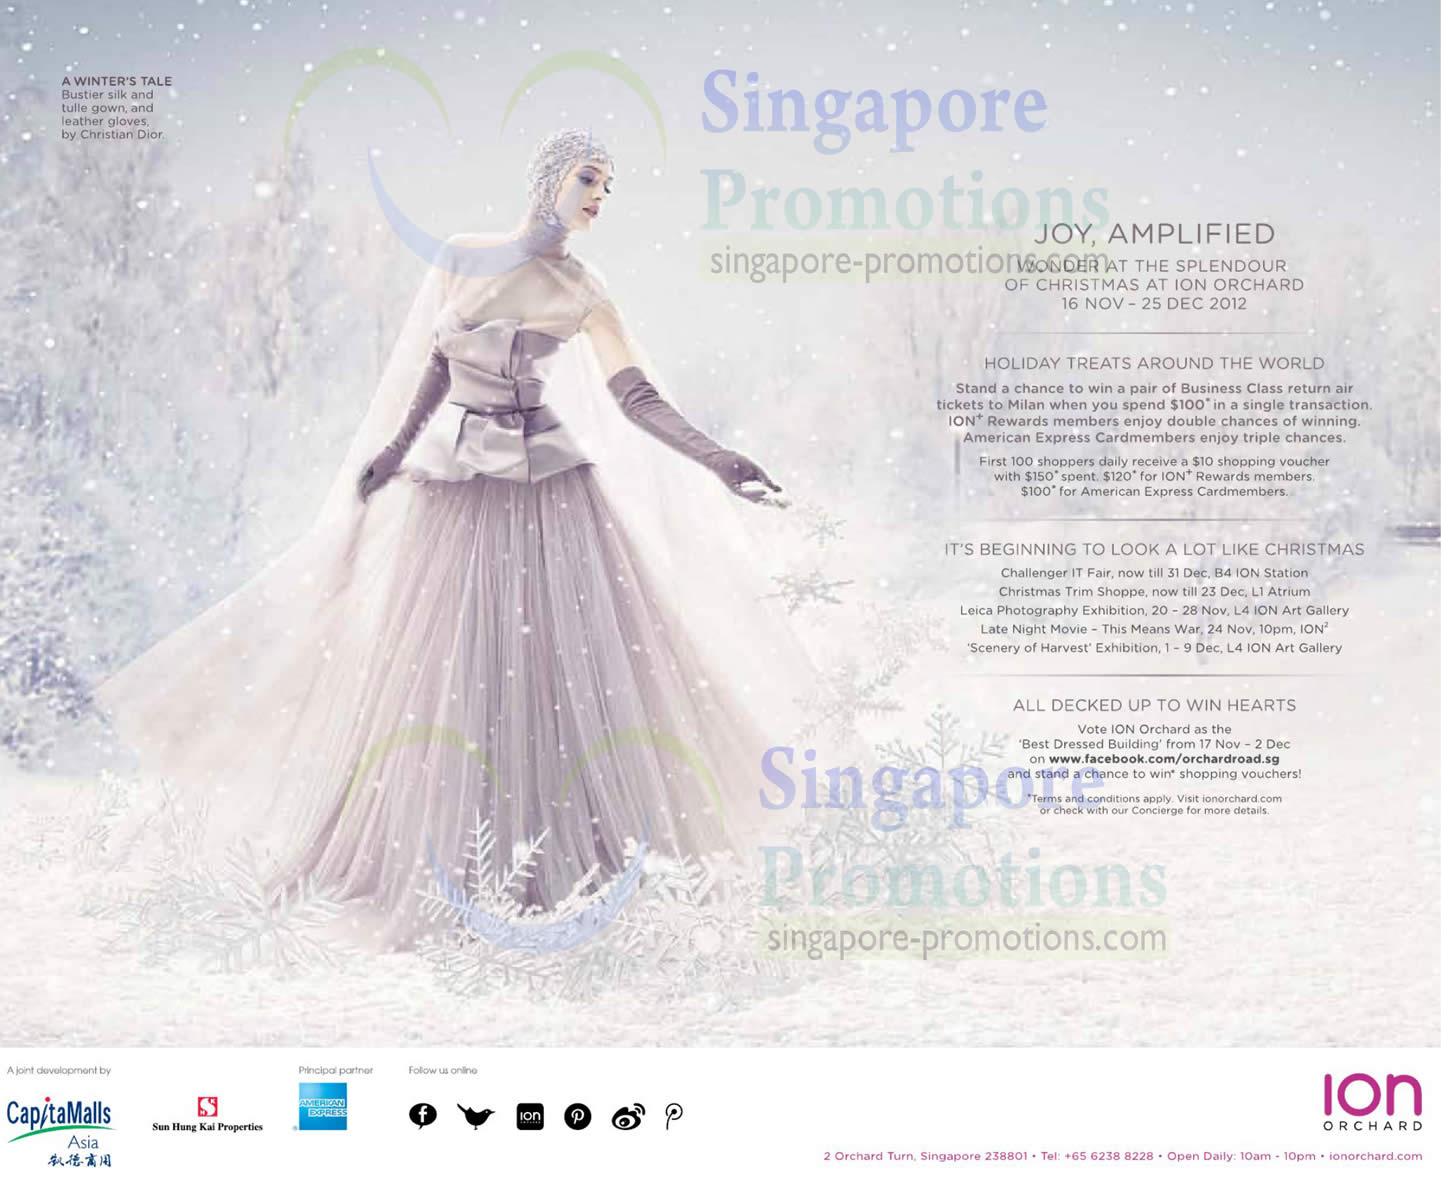 ION Orchard Christmas Promotions & Events 16 Nov – 25 Dec 2012